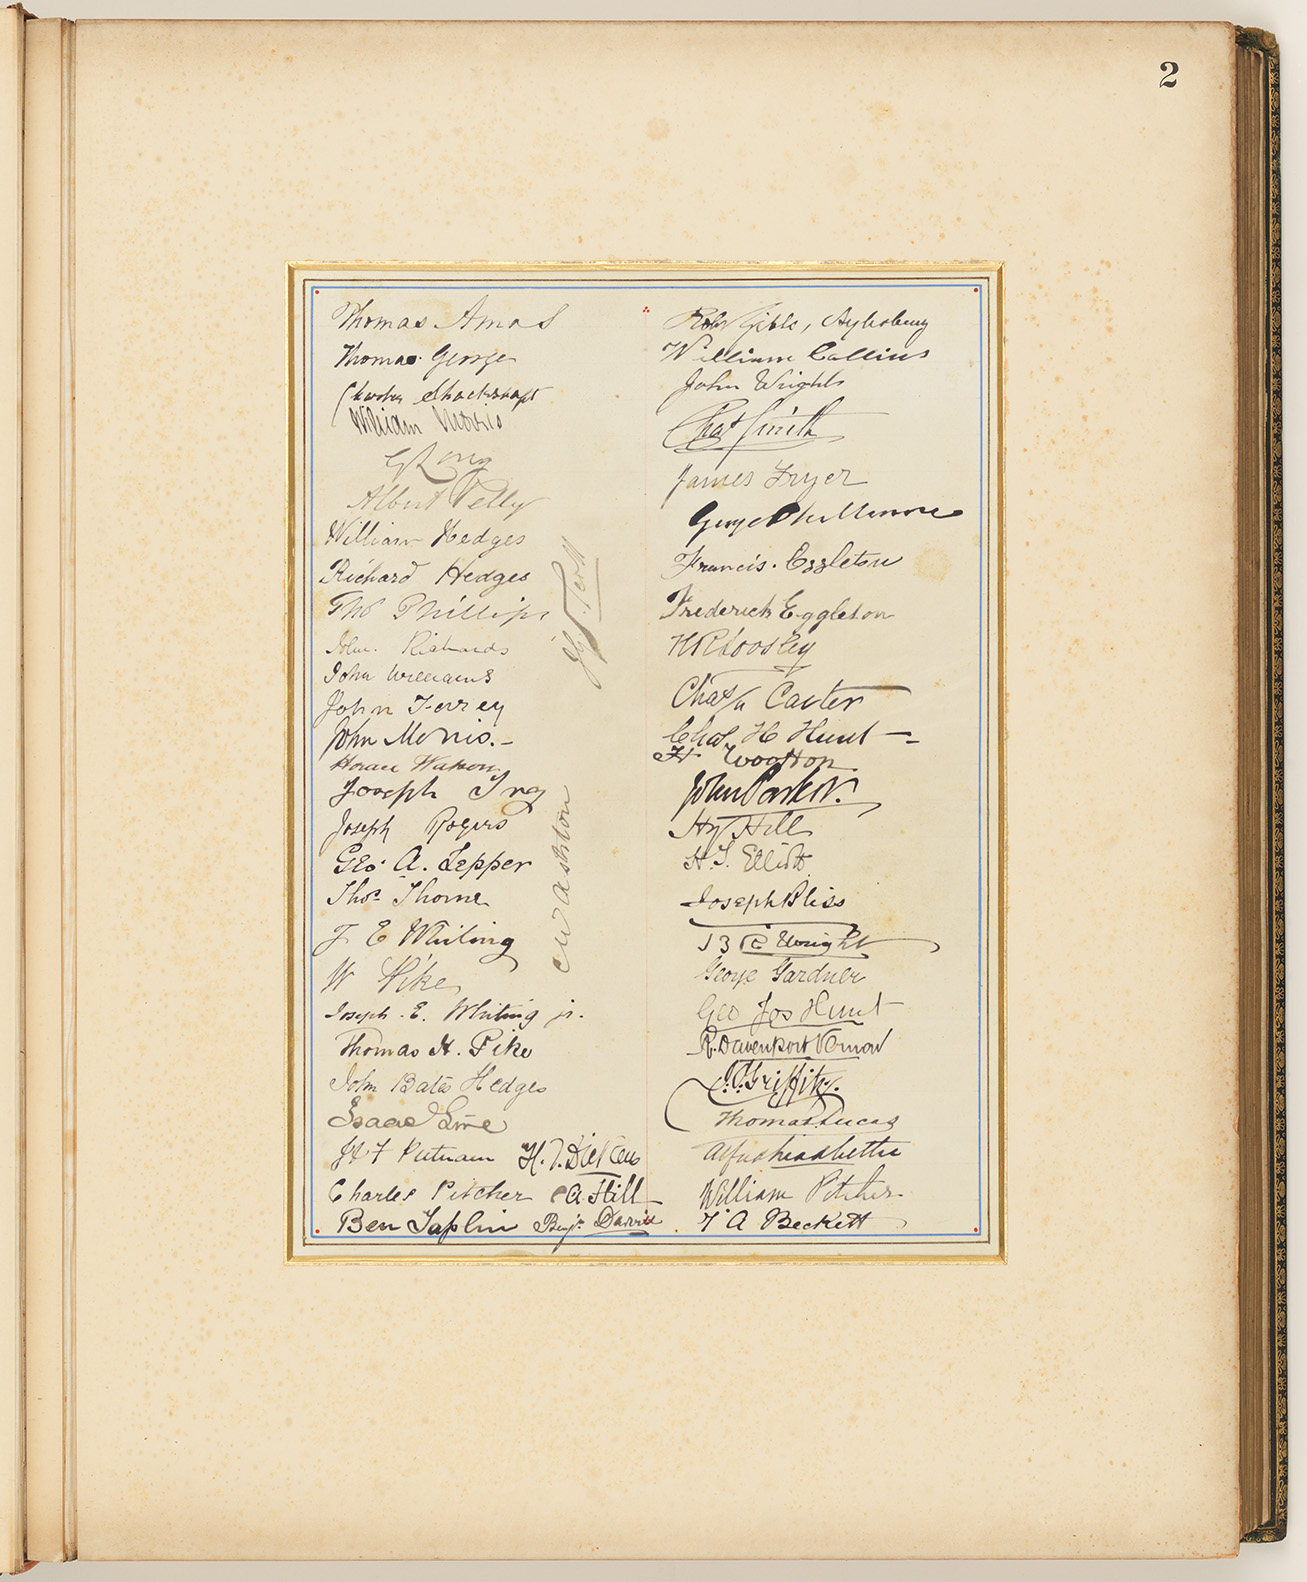 02 Addresses Presented to Lord Carrington Governor of New South Wales No. 4, page 2 signature panel